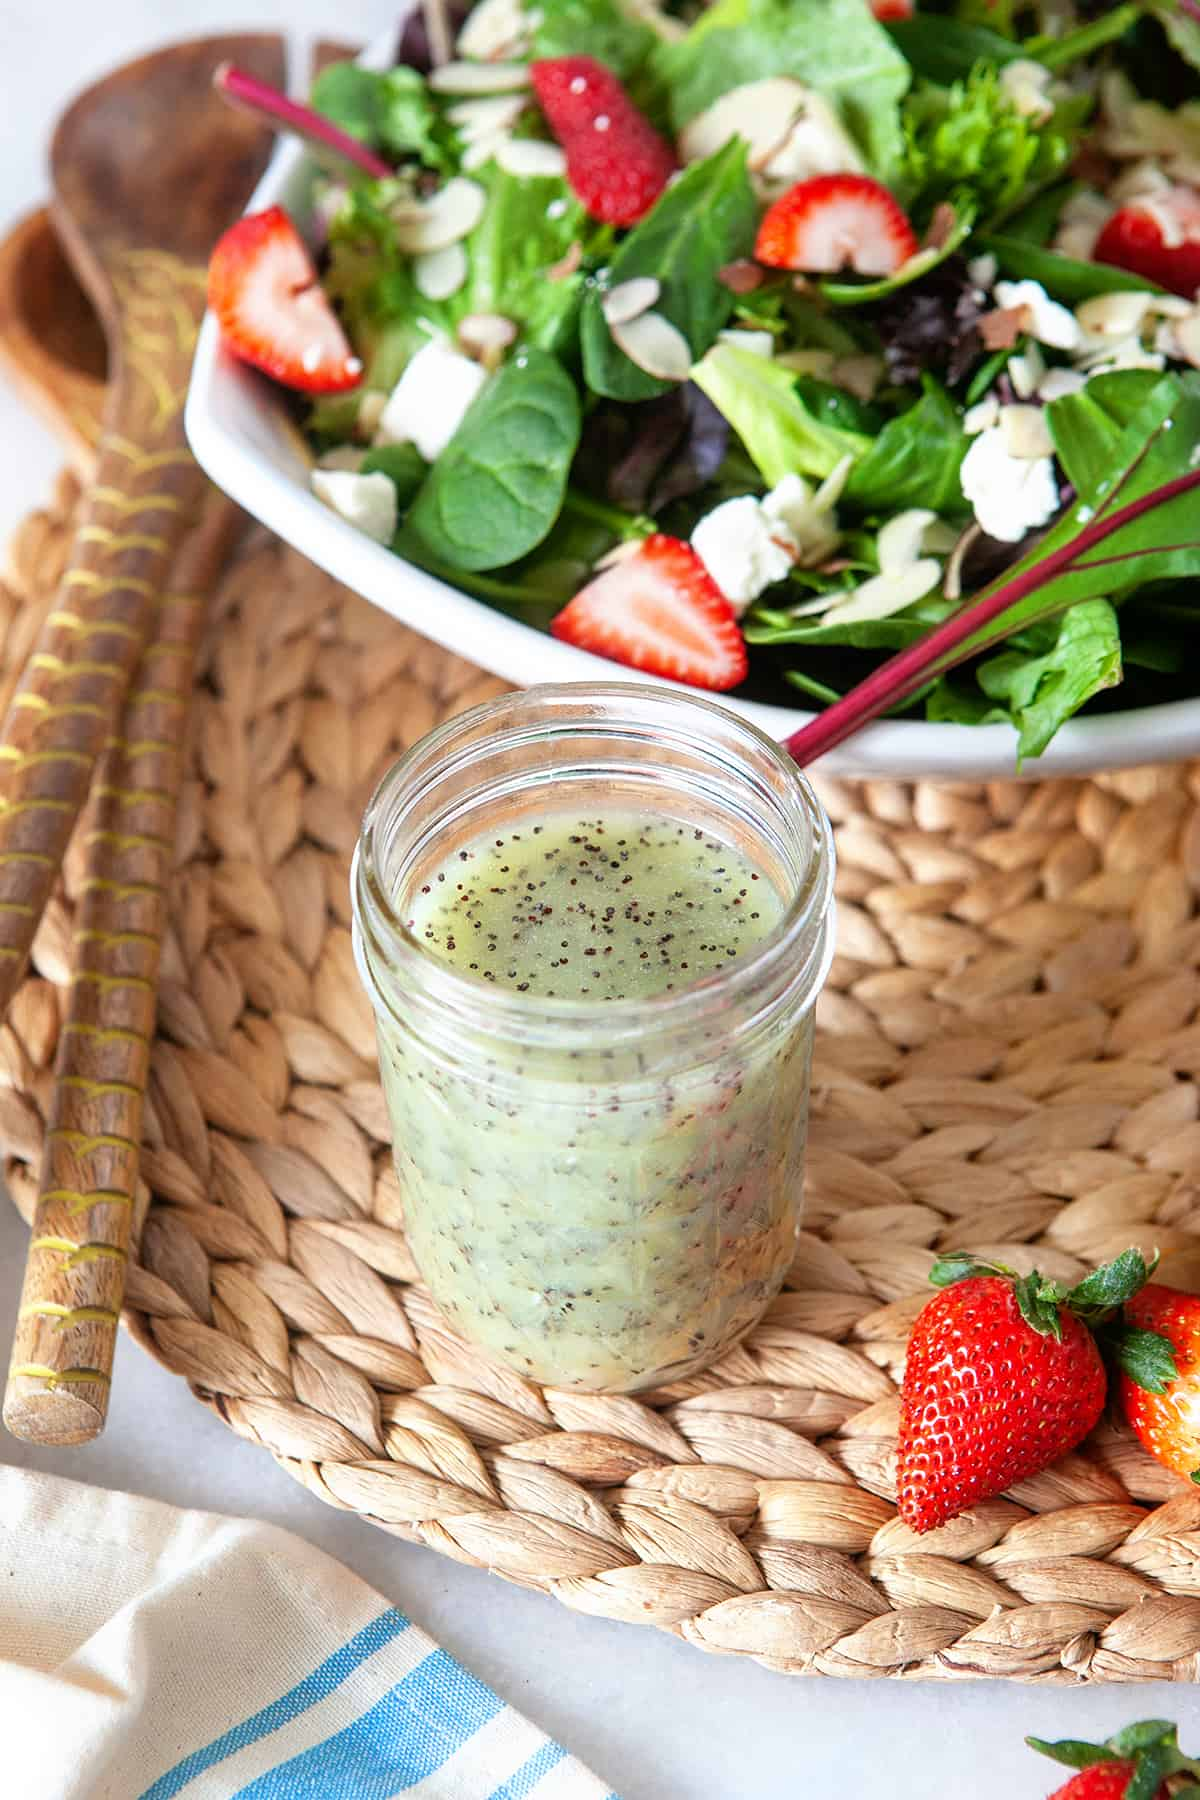 Poppy Seed Dressing on a woven mat with a strawberry salad